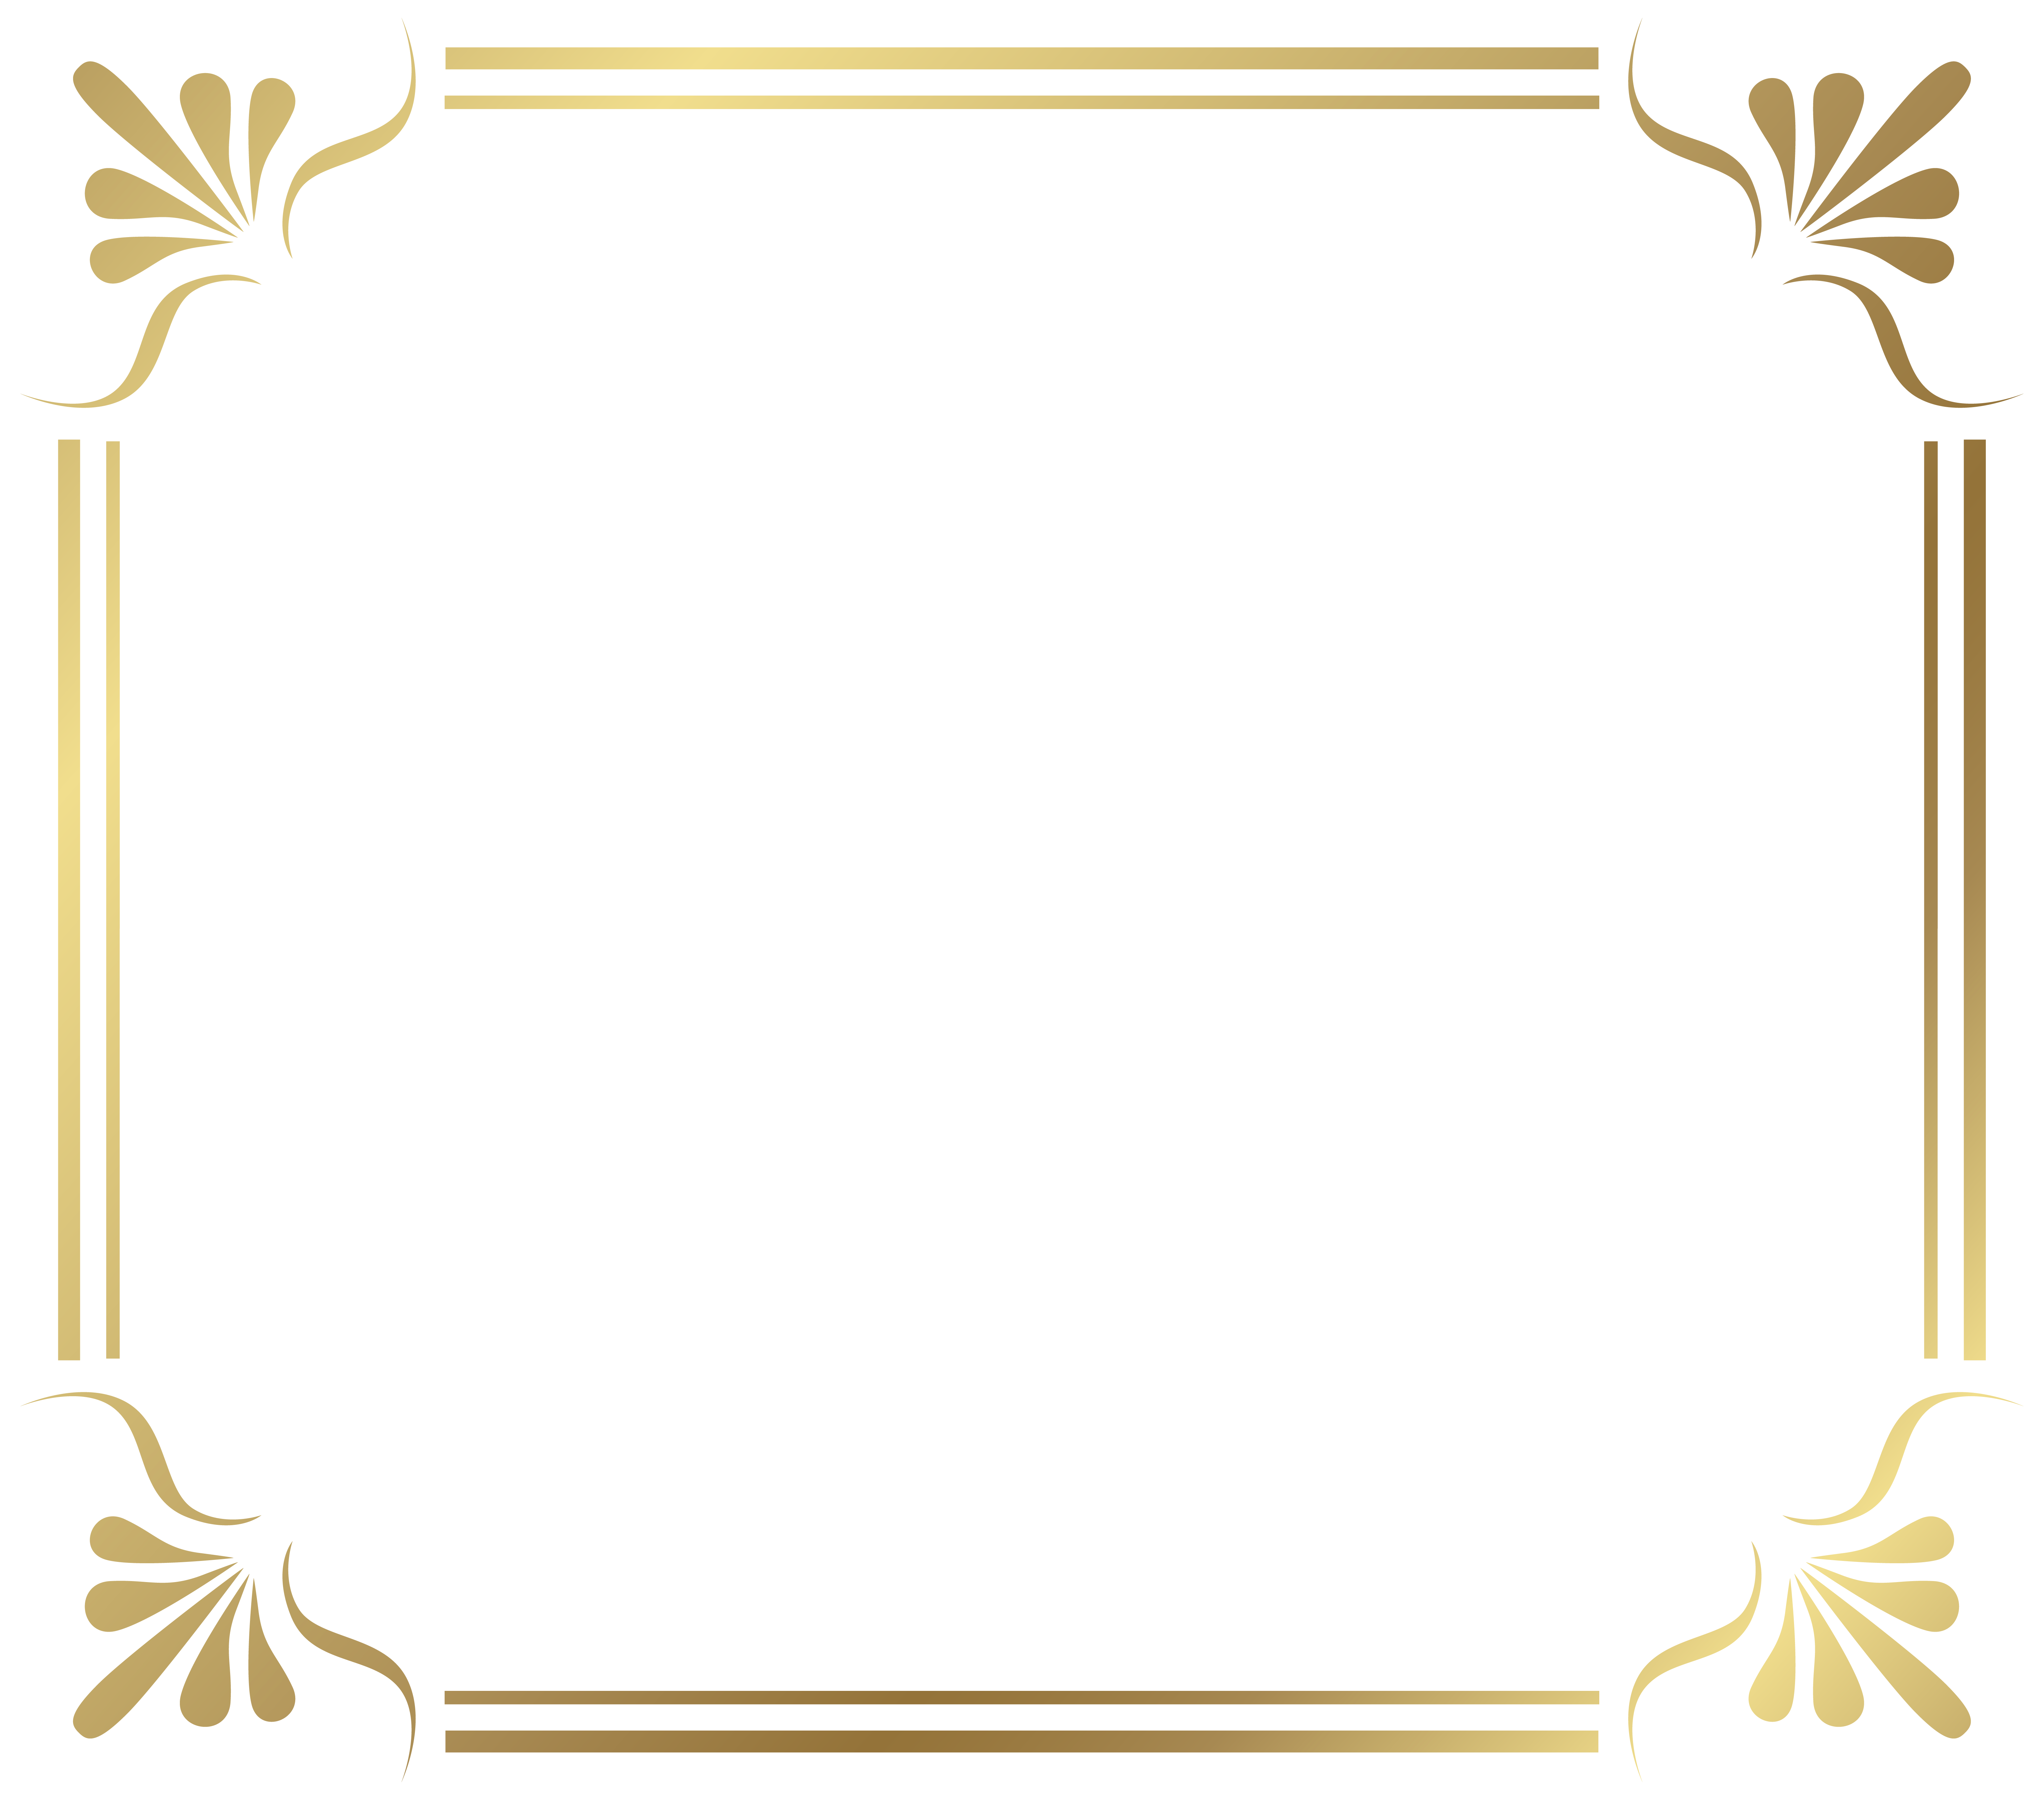 Gold Border Frame PNG File - Borders PNG HD